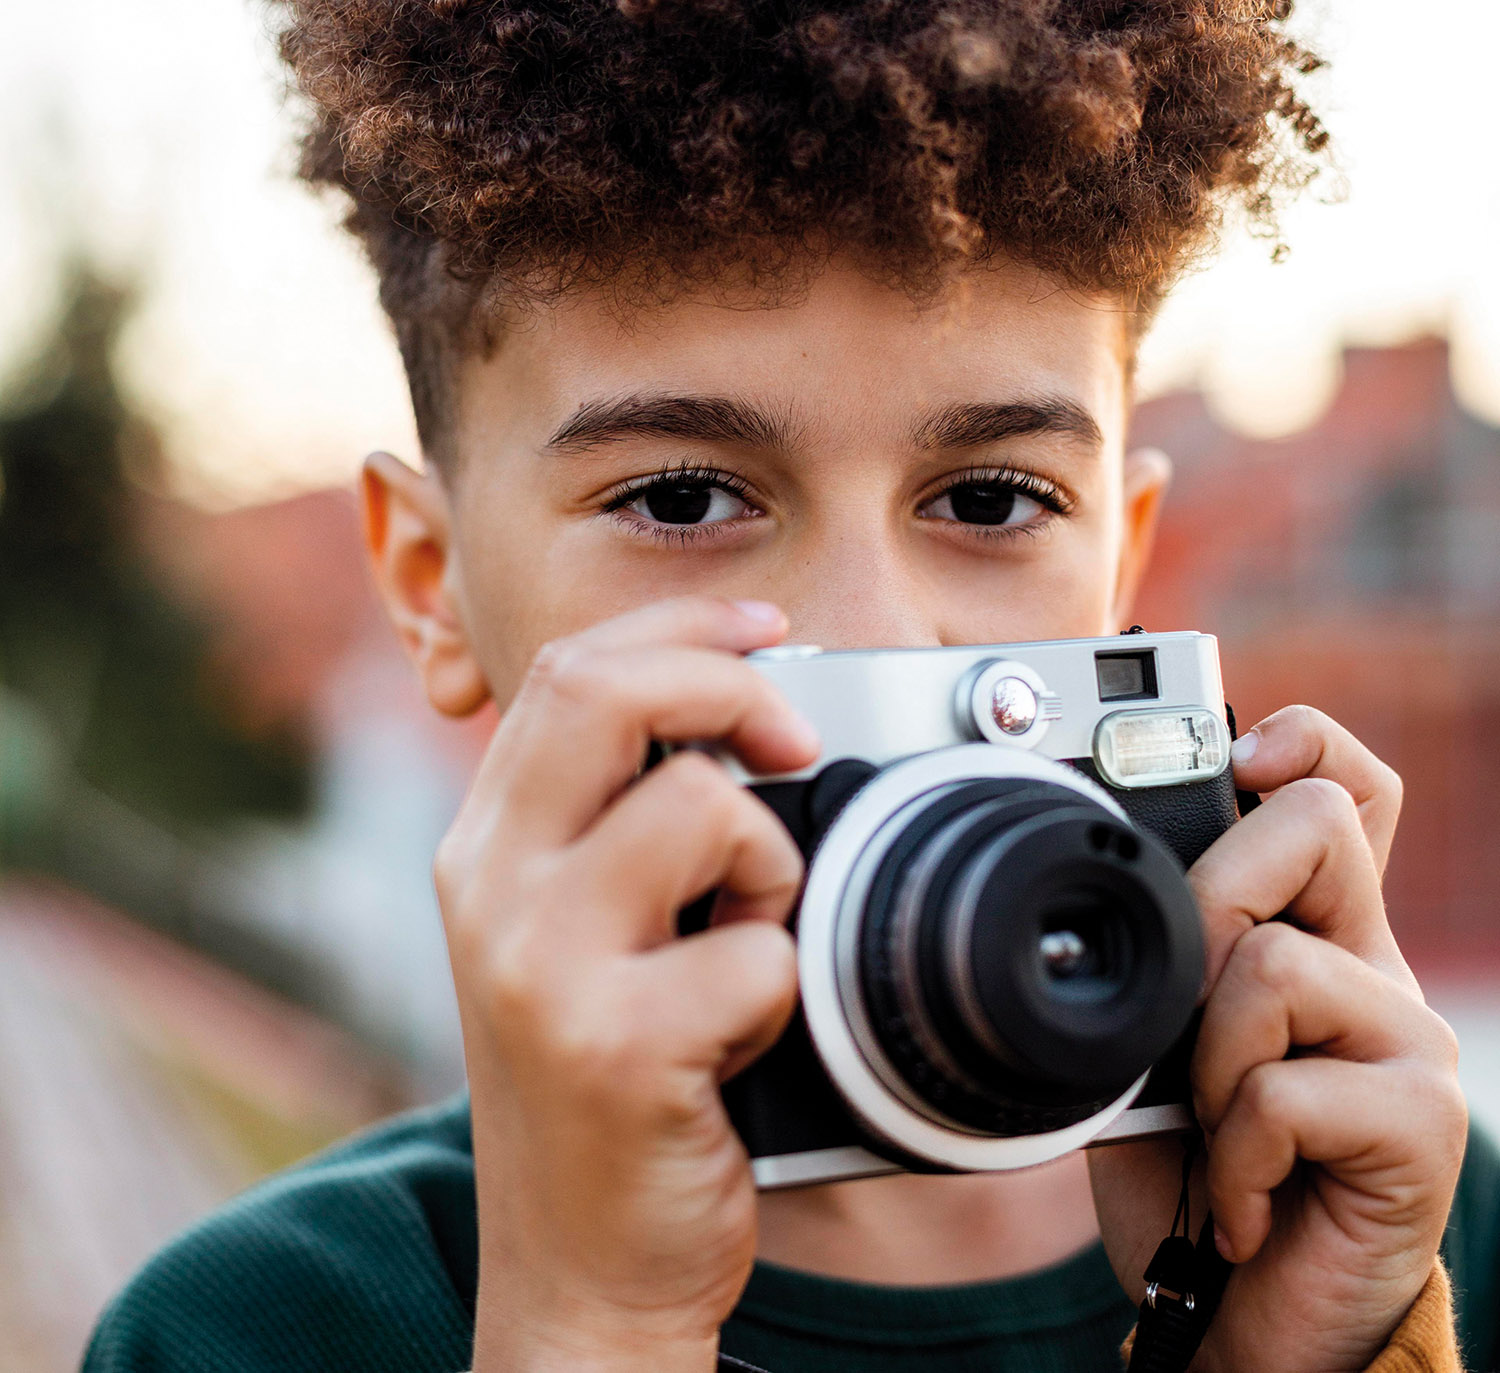 little-boy-taking-photo-with-his-camera-outside